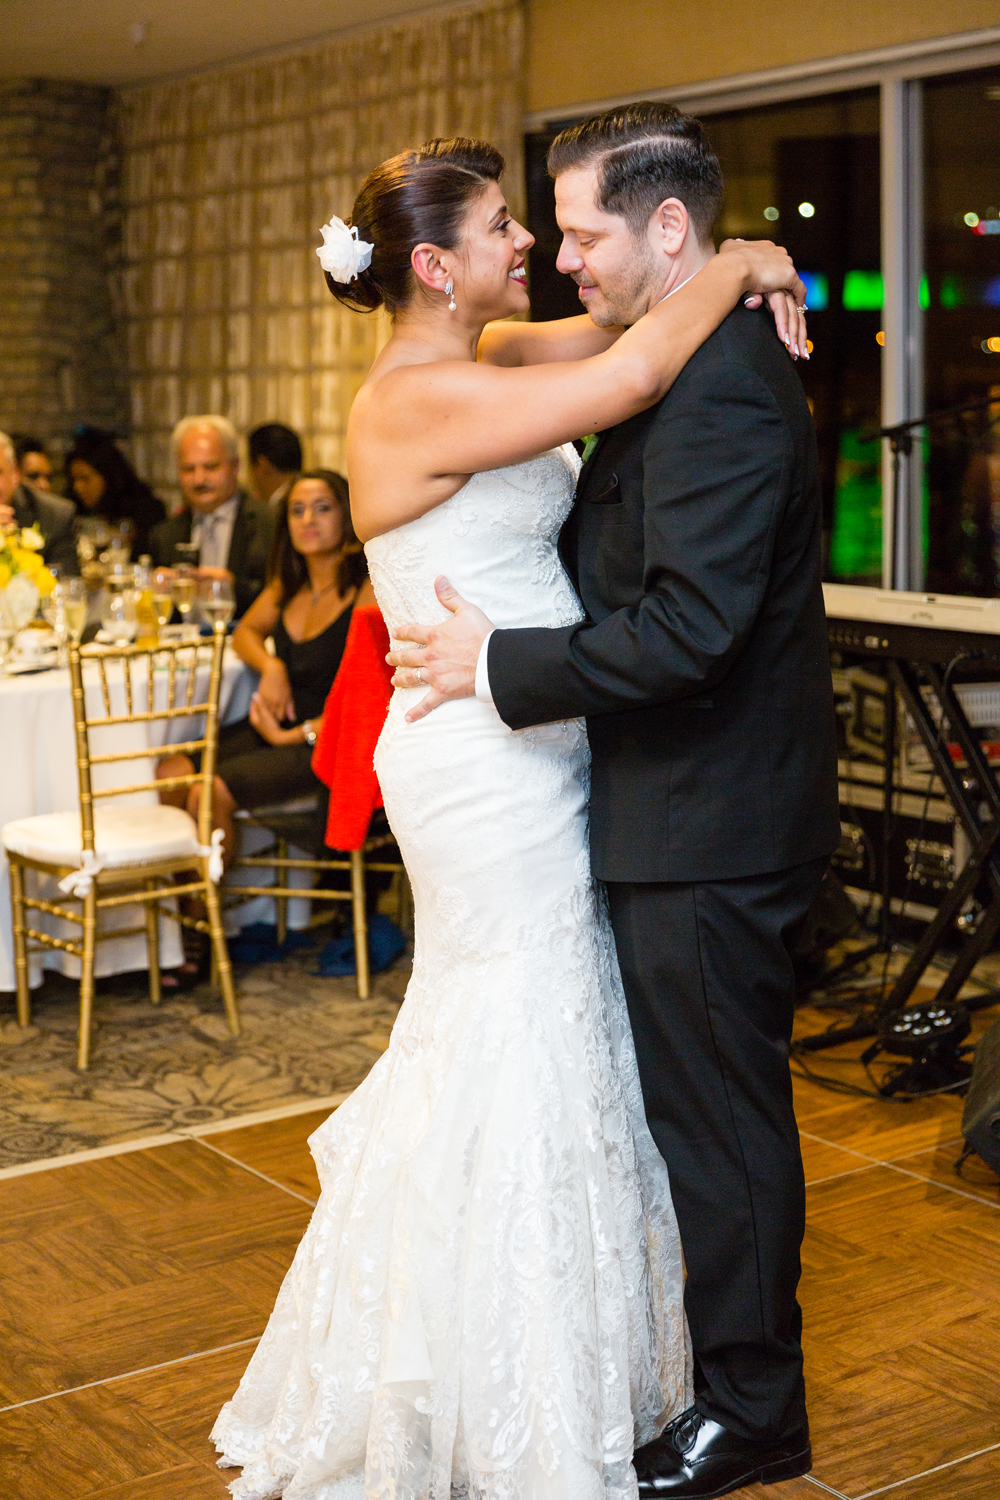 d6557-lively-navy-yellow-harbor-wedding-bride-groom-first-dance.jpg